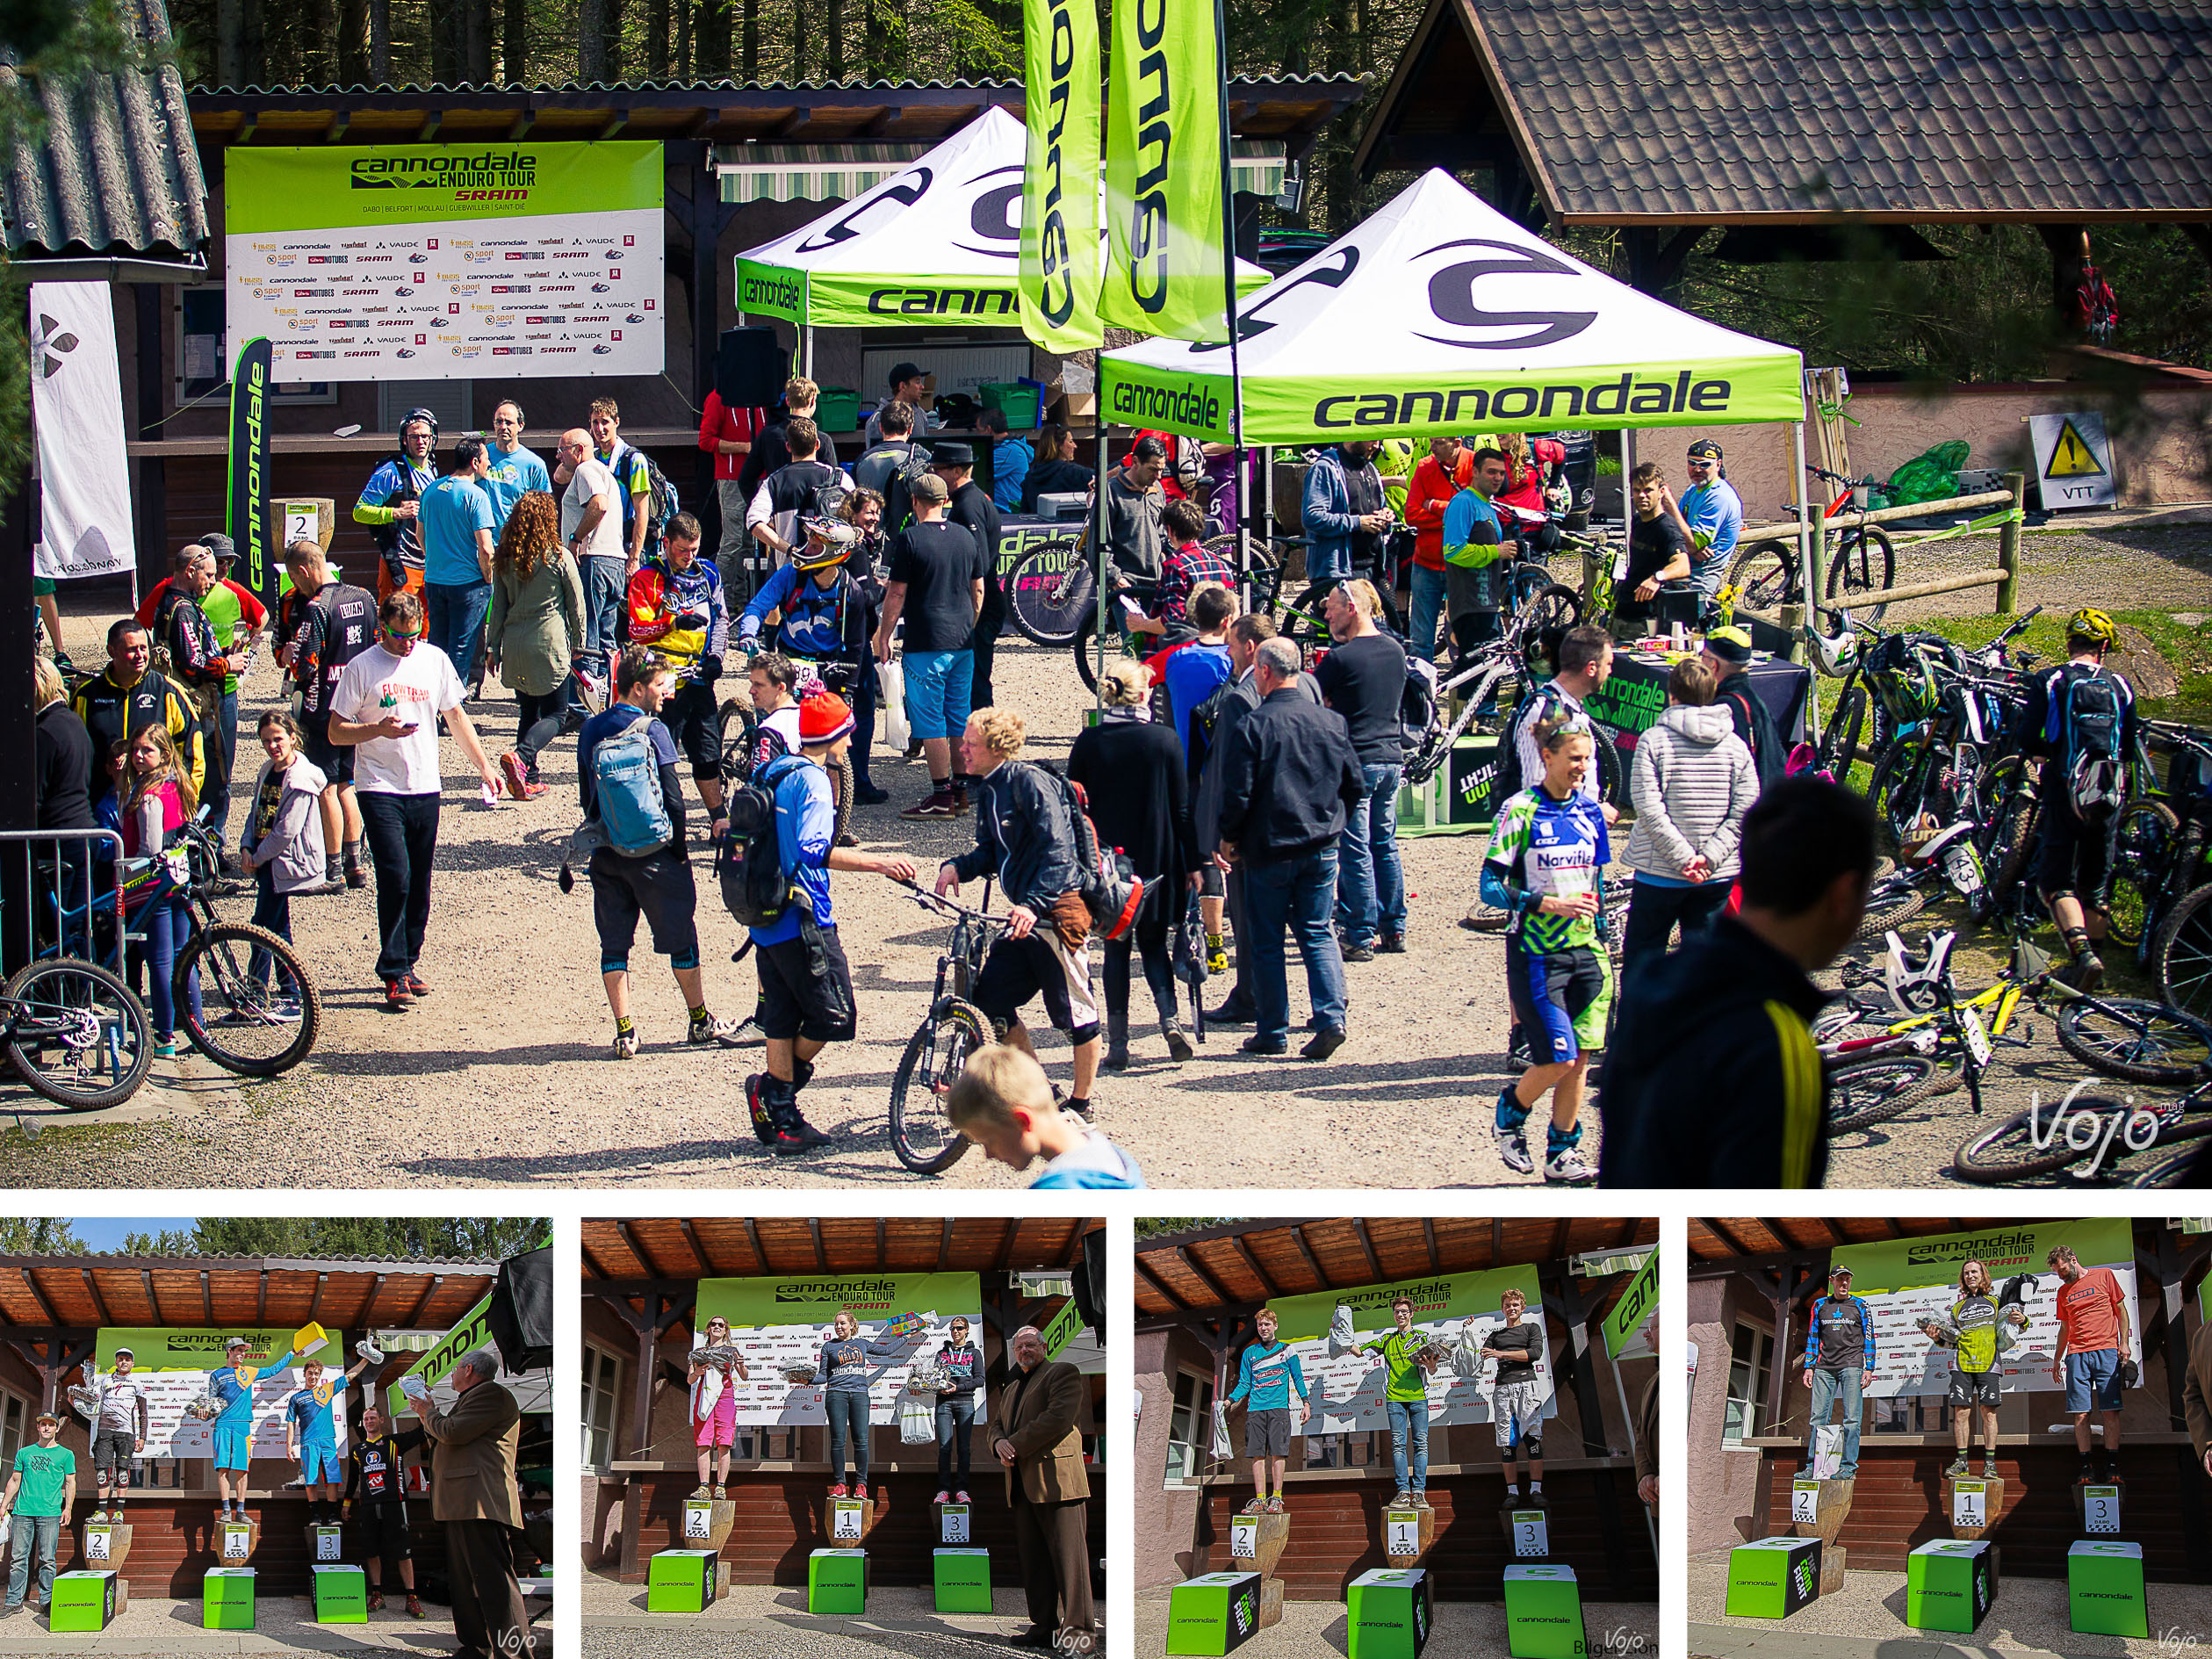 Dabo_Cannondale_Enduro_Tour_Podium_2